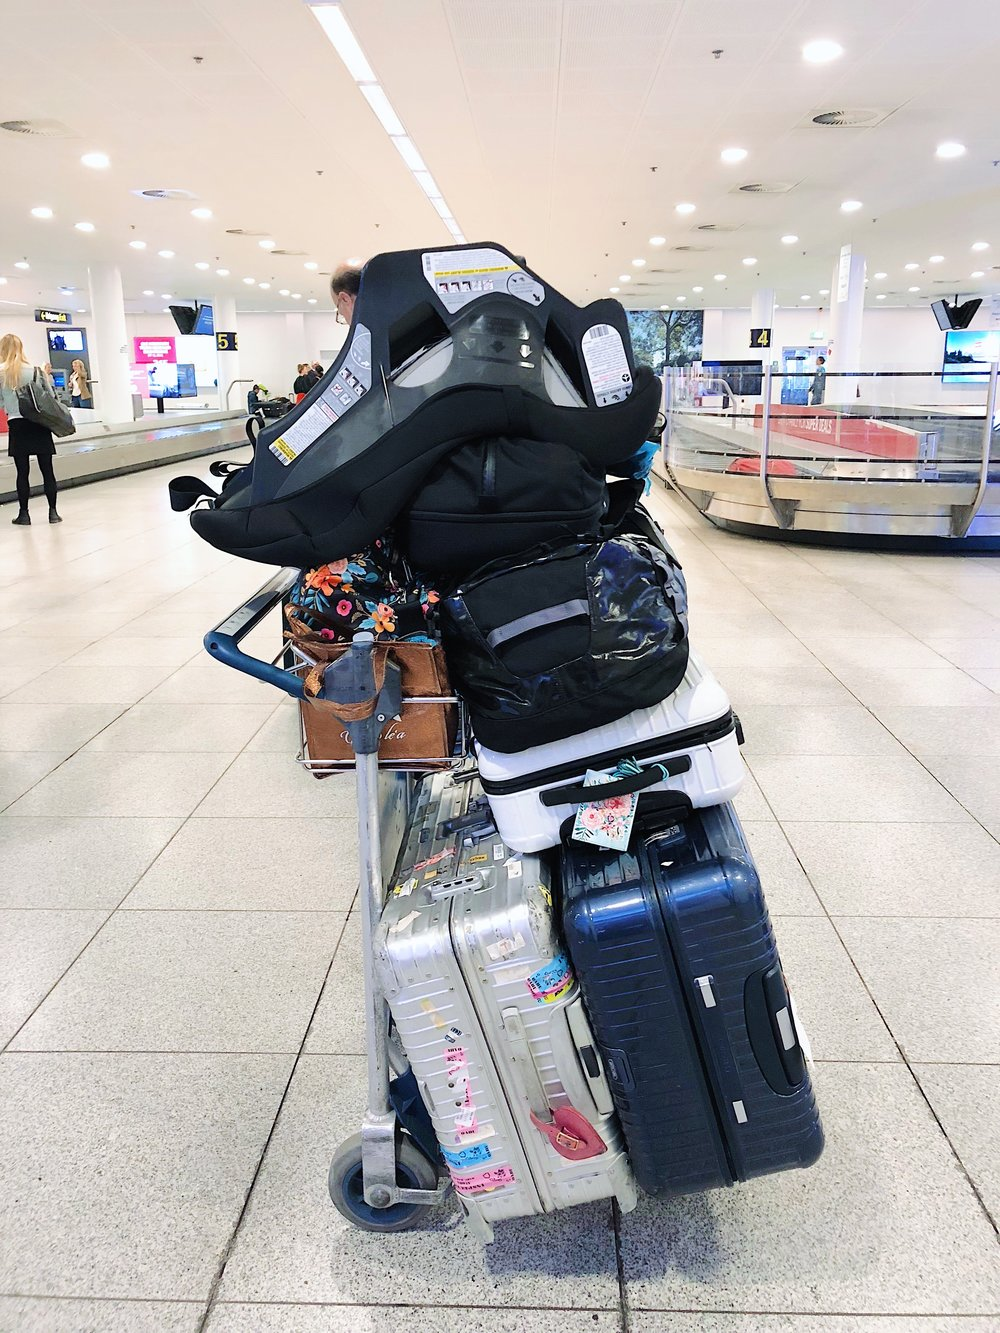 Look at how nicely the Cosco Scenera fits in with the rest of our luggage, ha! (We could never do this kind of stacking with the Nuna Rava, which requires its own massive carrying bag). This was in the Copenhagen airport (one of our final stops on this summer's Europe trip).